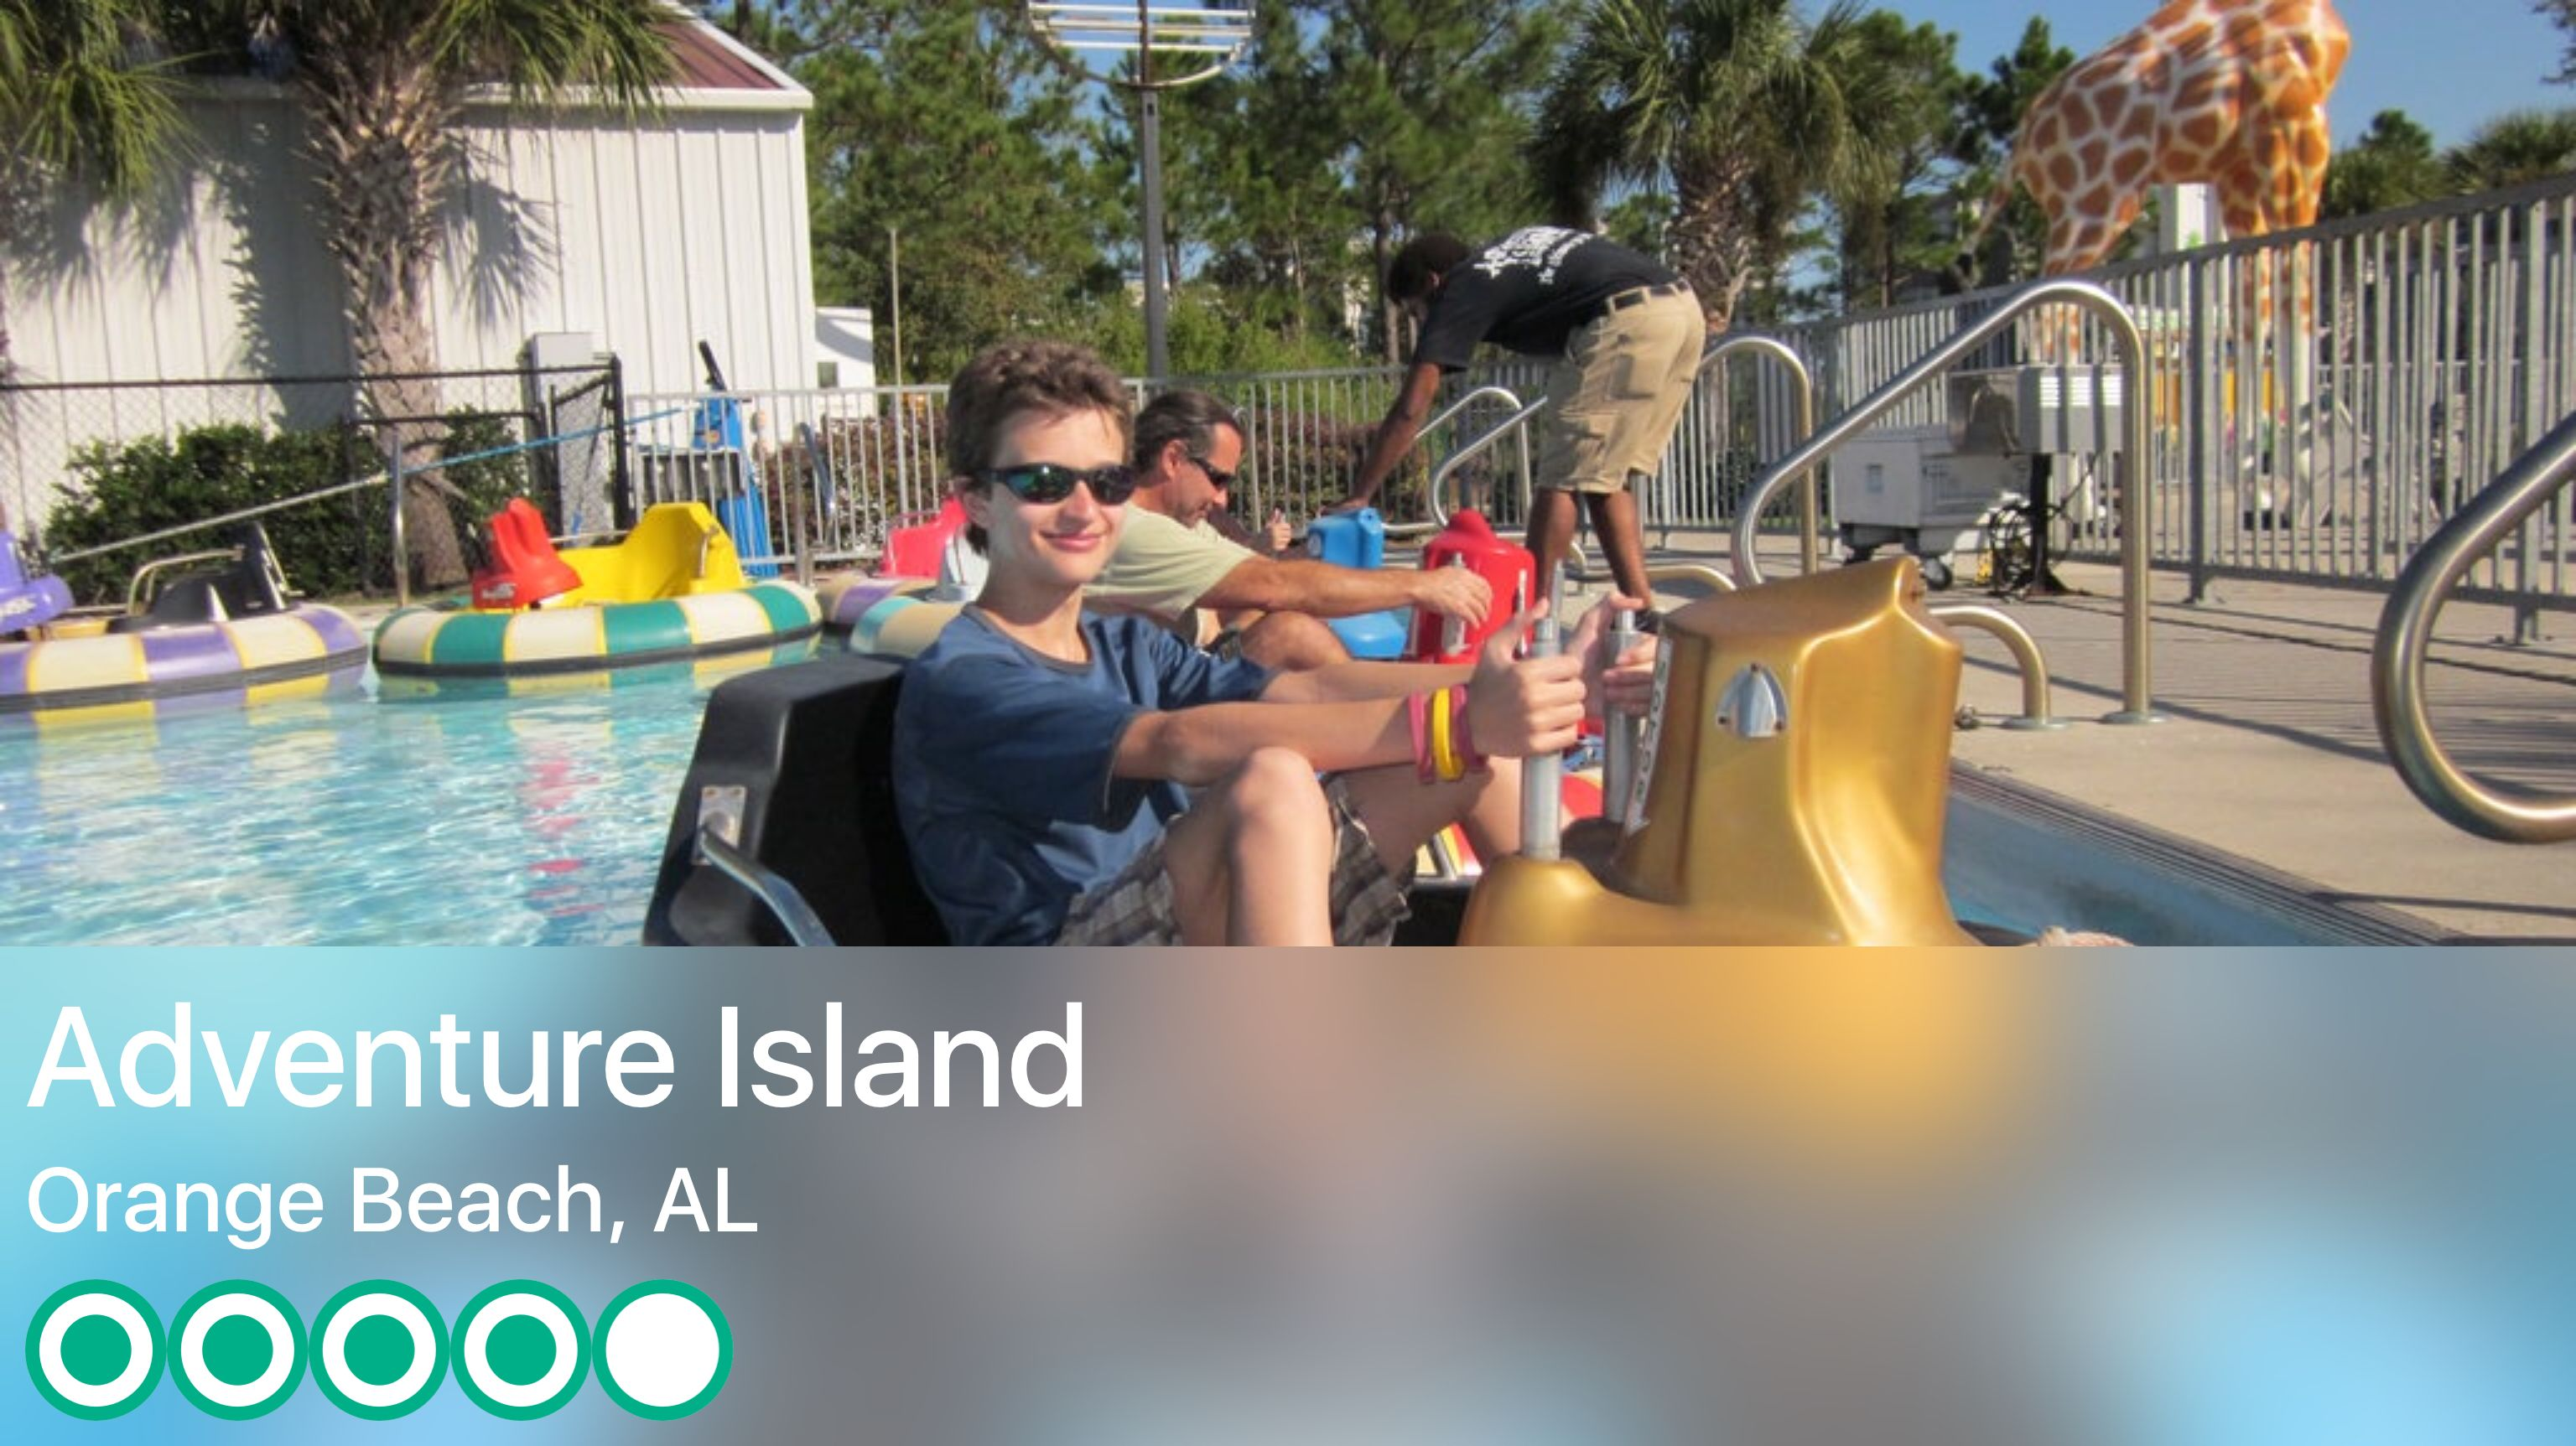 Https Www Tripadvisor Attraction Review G30753 D2218472 Reviews Adventure Island Orange Beach Alabama Html M 19904